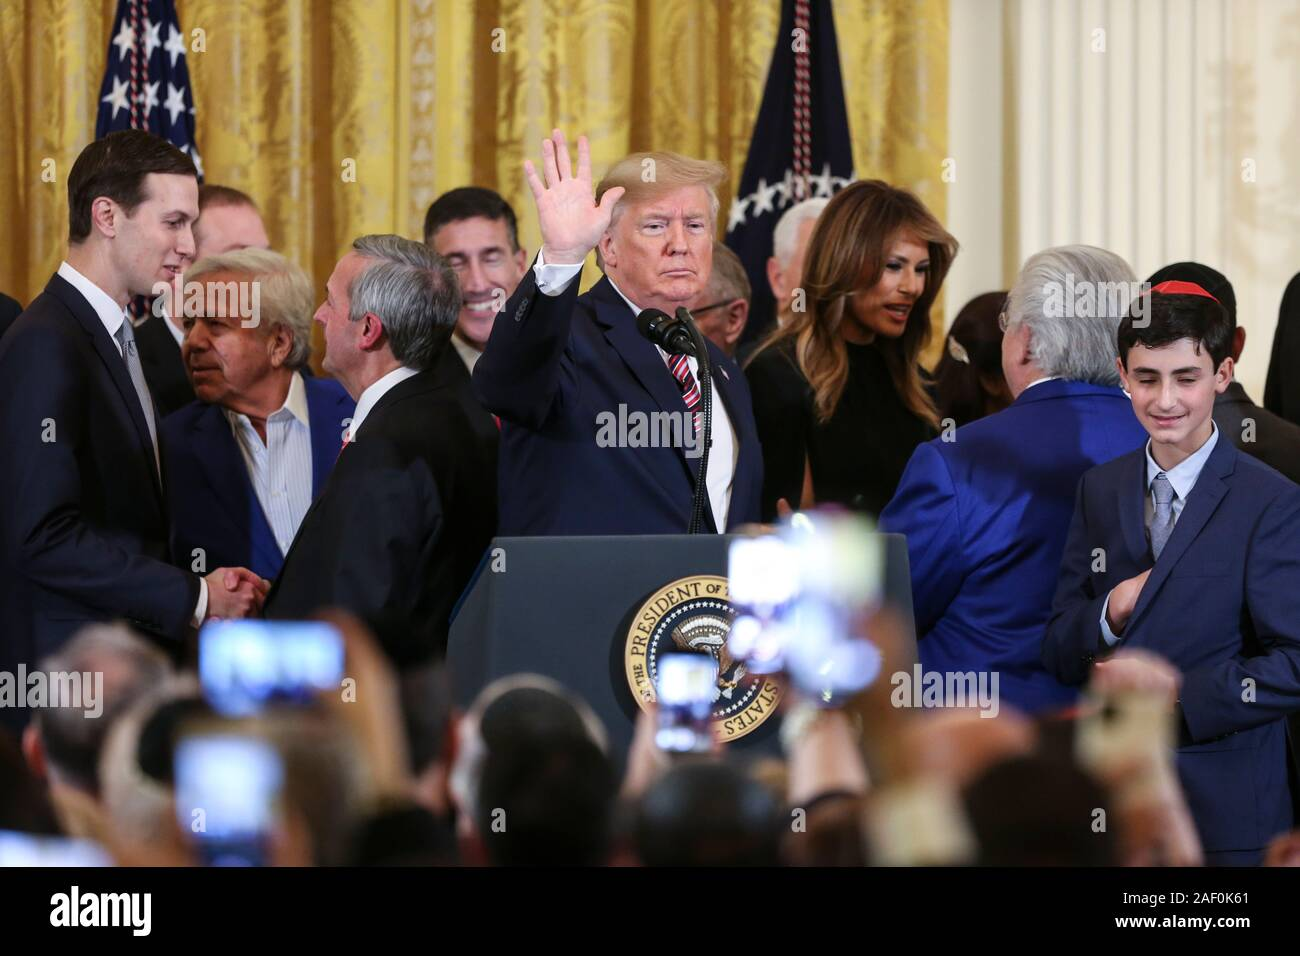 Washington, USA. 11th Dec, 2019. President Donald Trump gestures after he delivered remarks during a Hanukkah Reception on December 11, 2019 in Washington, DC. (Photo by Oliver Contreras/SIPA USA) Credit: Sipa USA/Alamy Live News Stock Photo